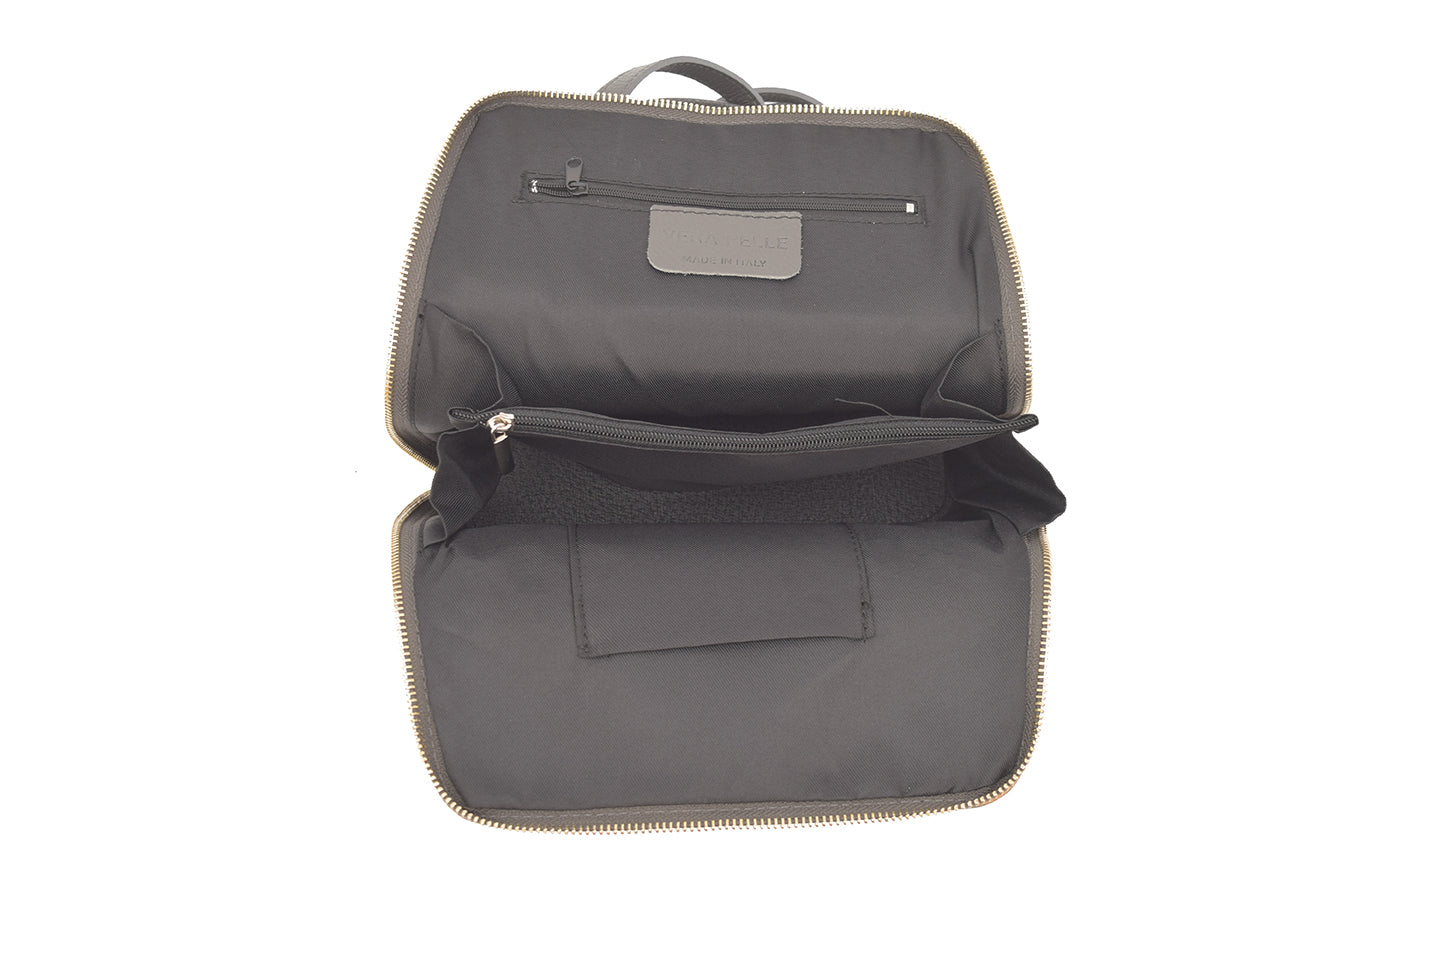 Dark Grey 3 in 1 - backpack / rucksack, cross body bag, and hand bag in one.